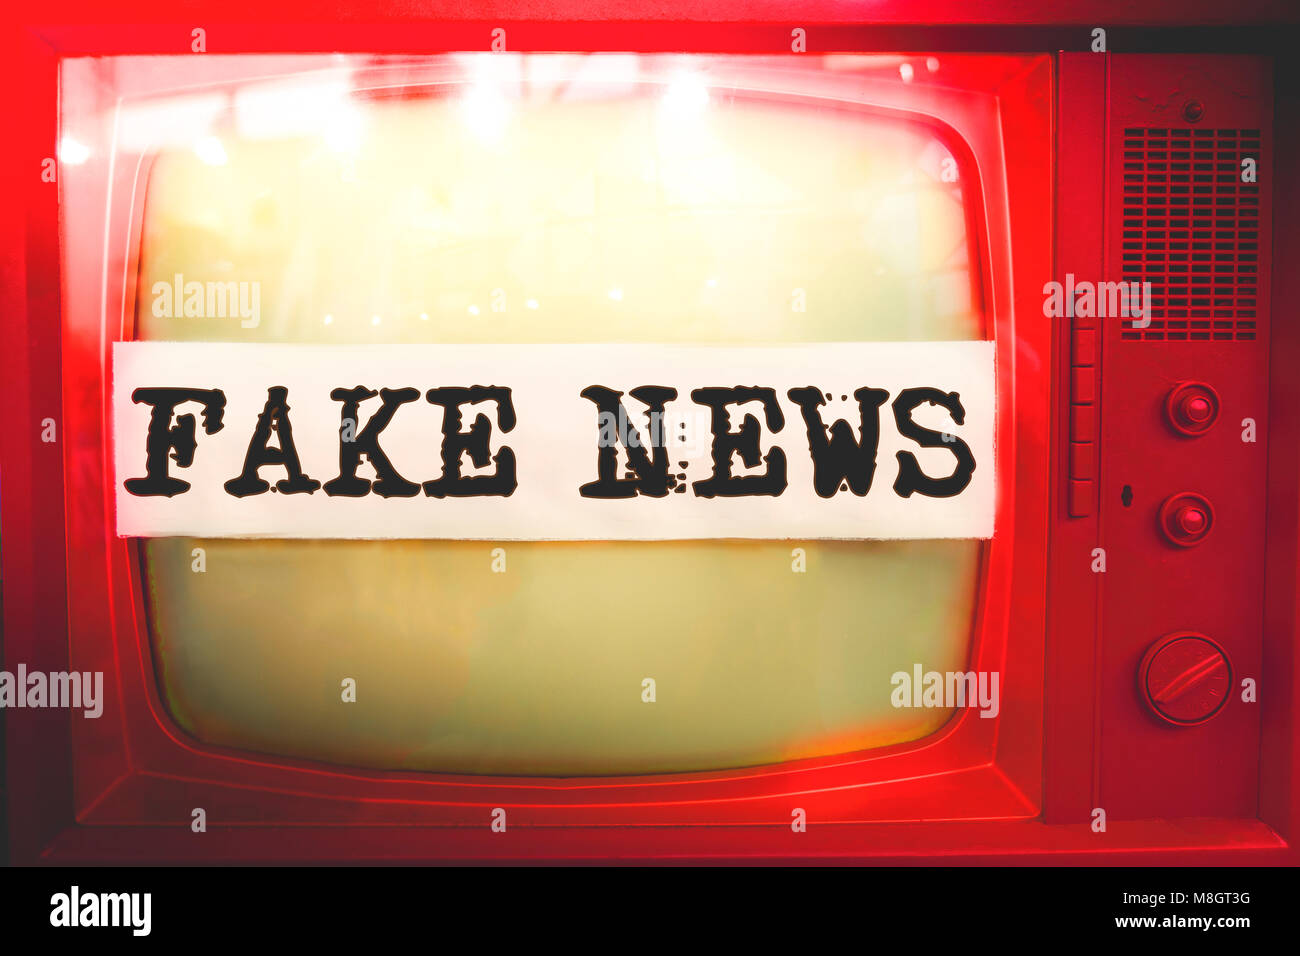 fake news red old tv text vintage retro - Stock Image